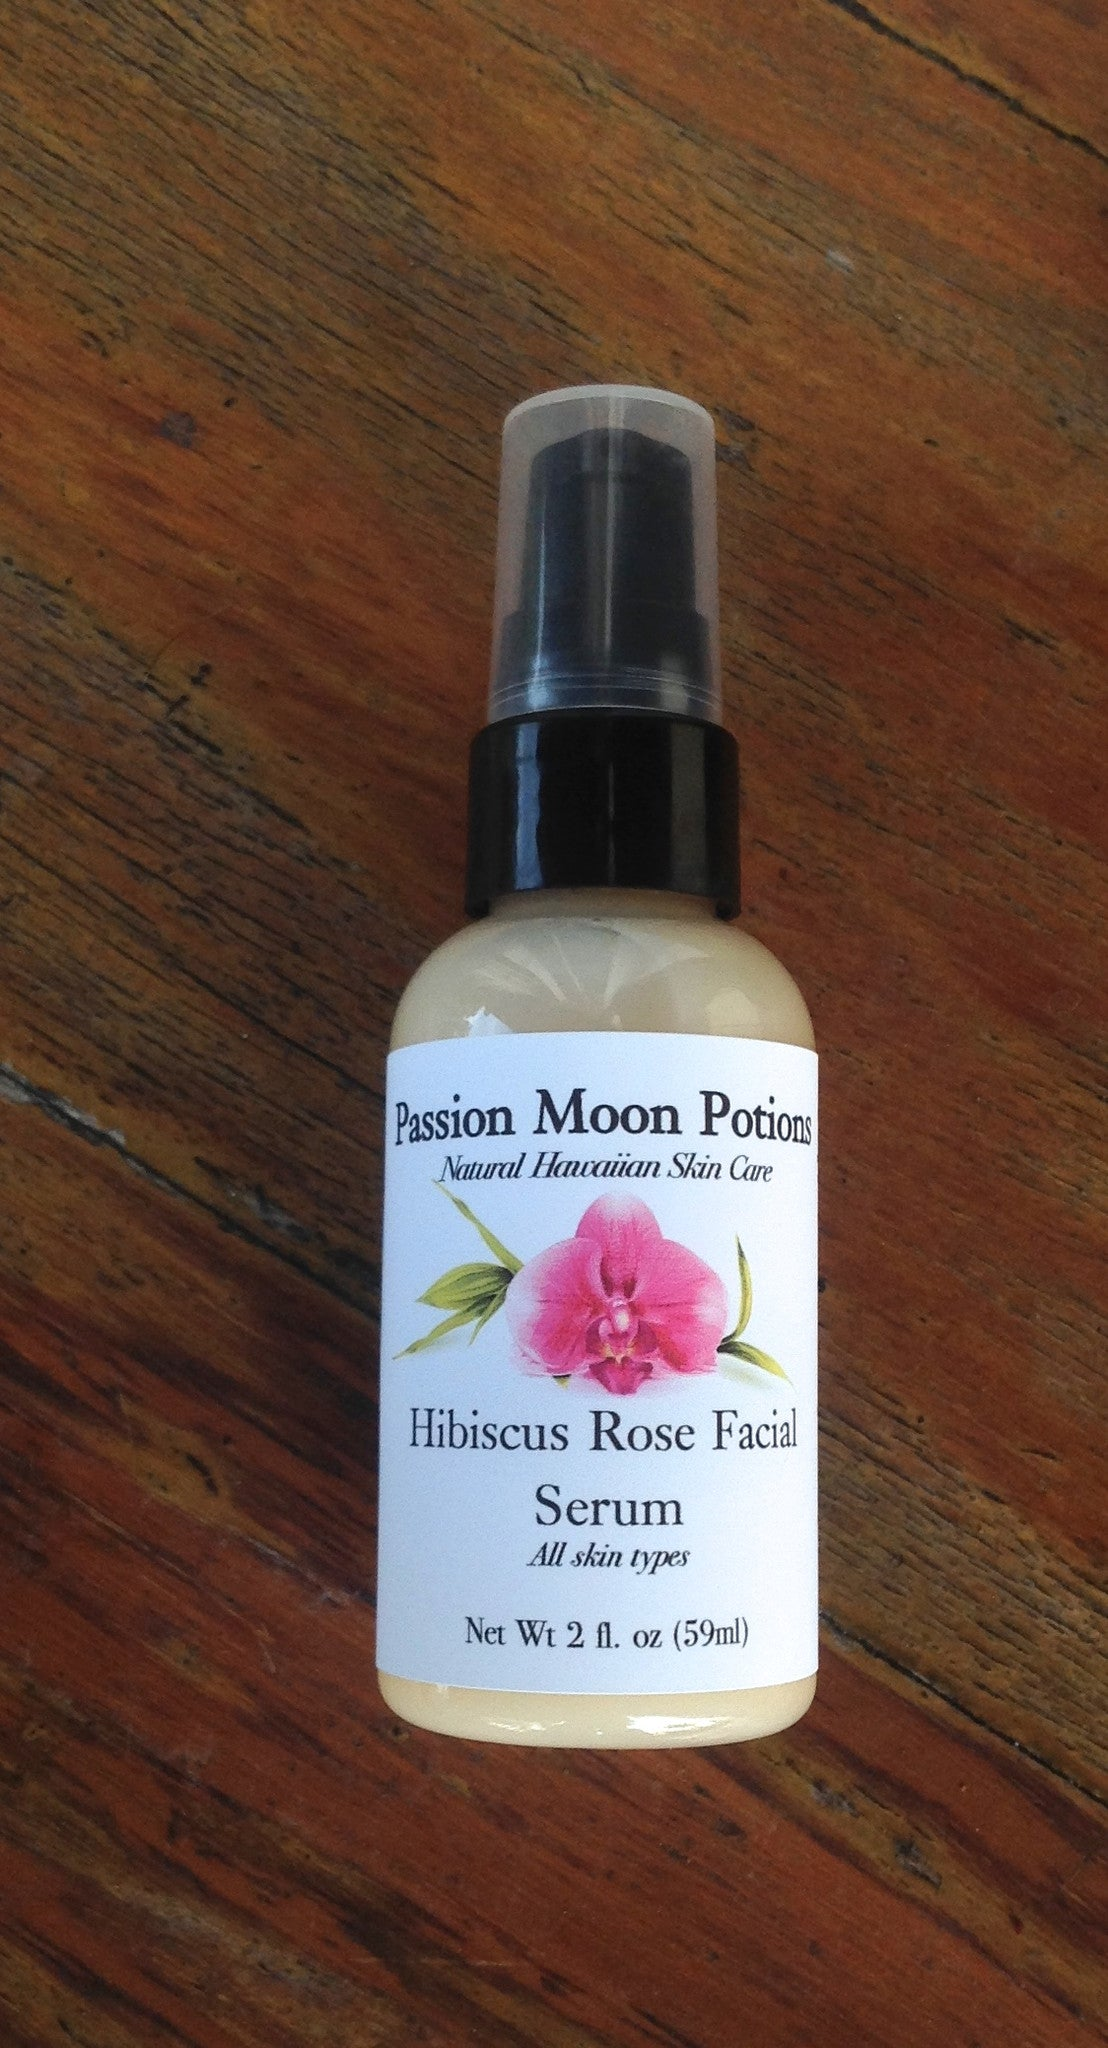 Hibiscus Rose Facial Serum - Passion Moon Potions - 2